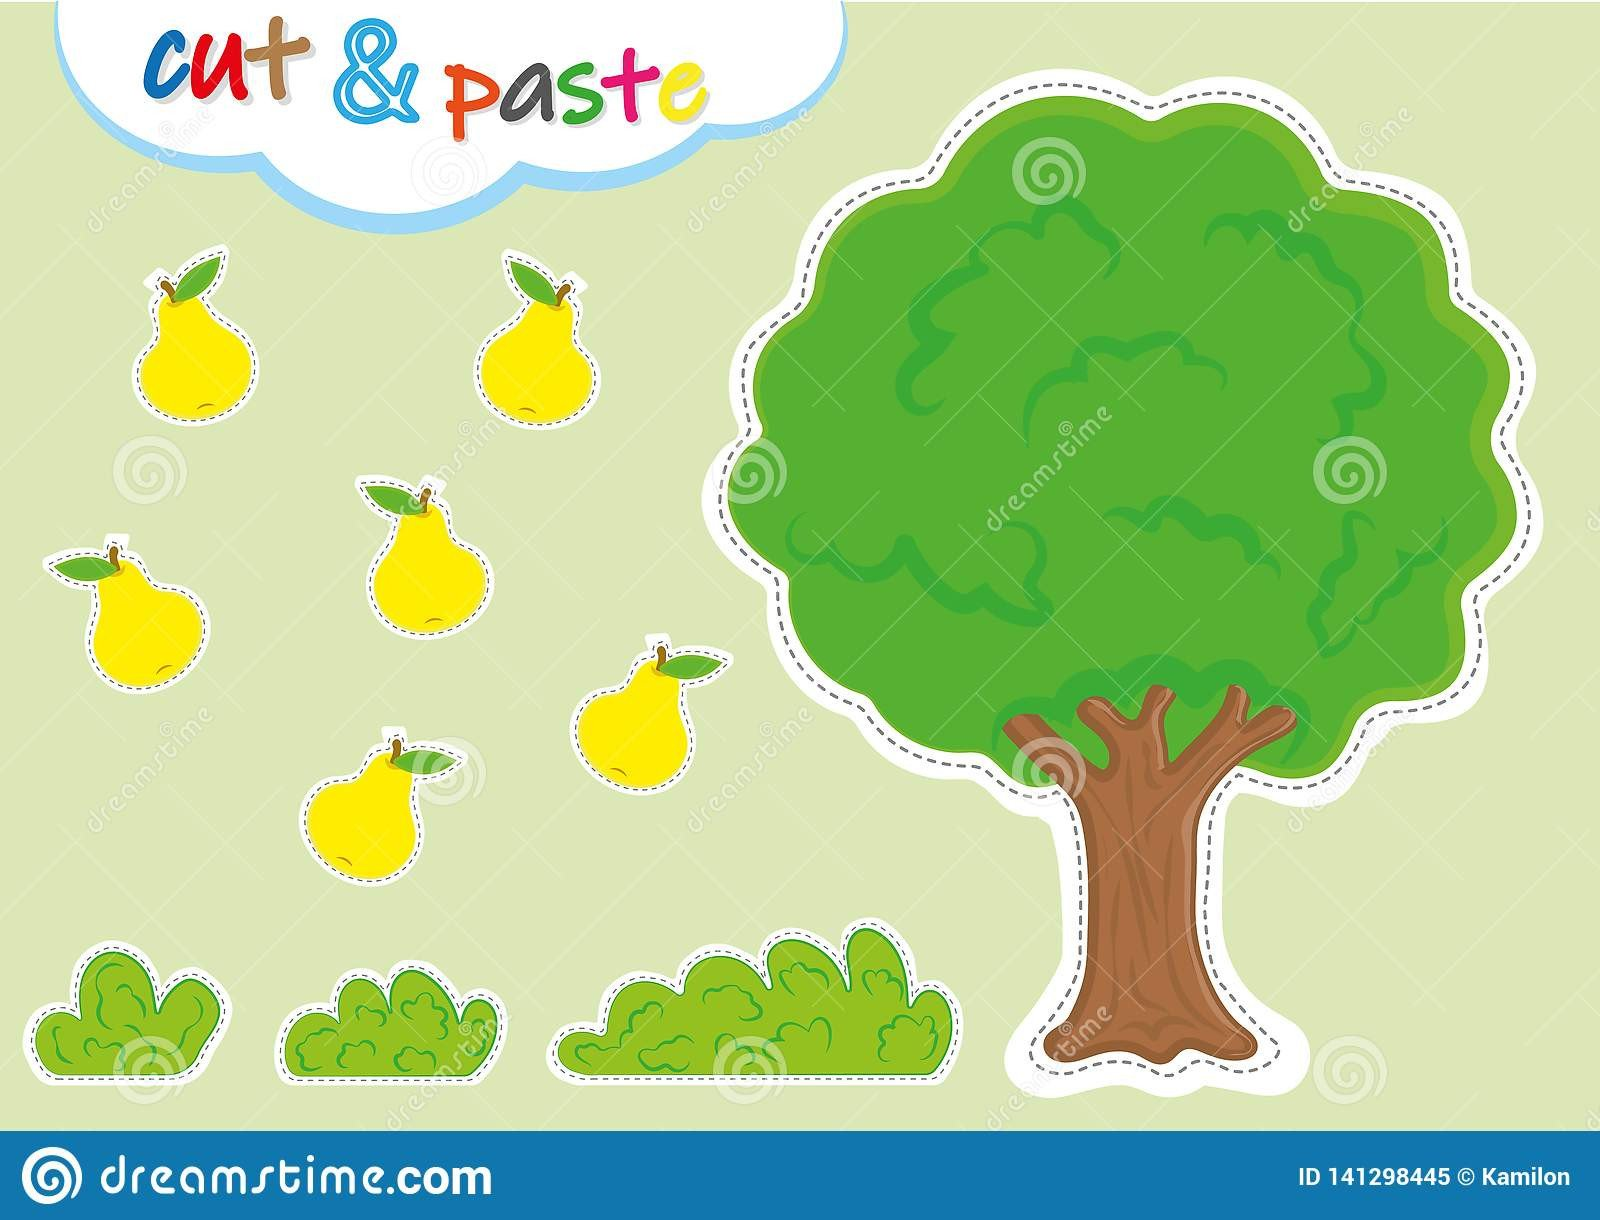 Cut and Paste Worksheets Cut and Paste Activities for Kindergarten Preschool Cutting